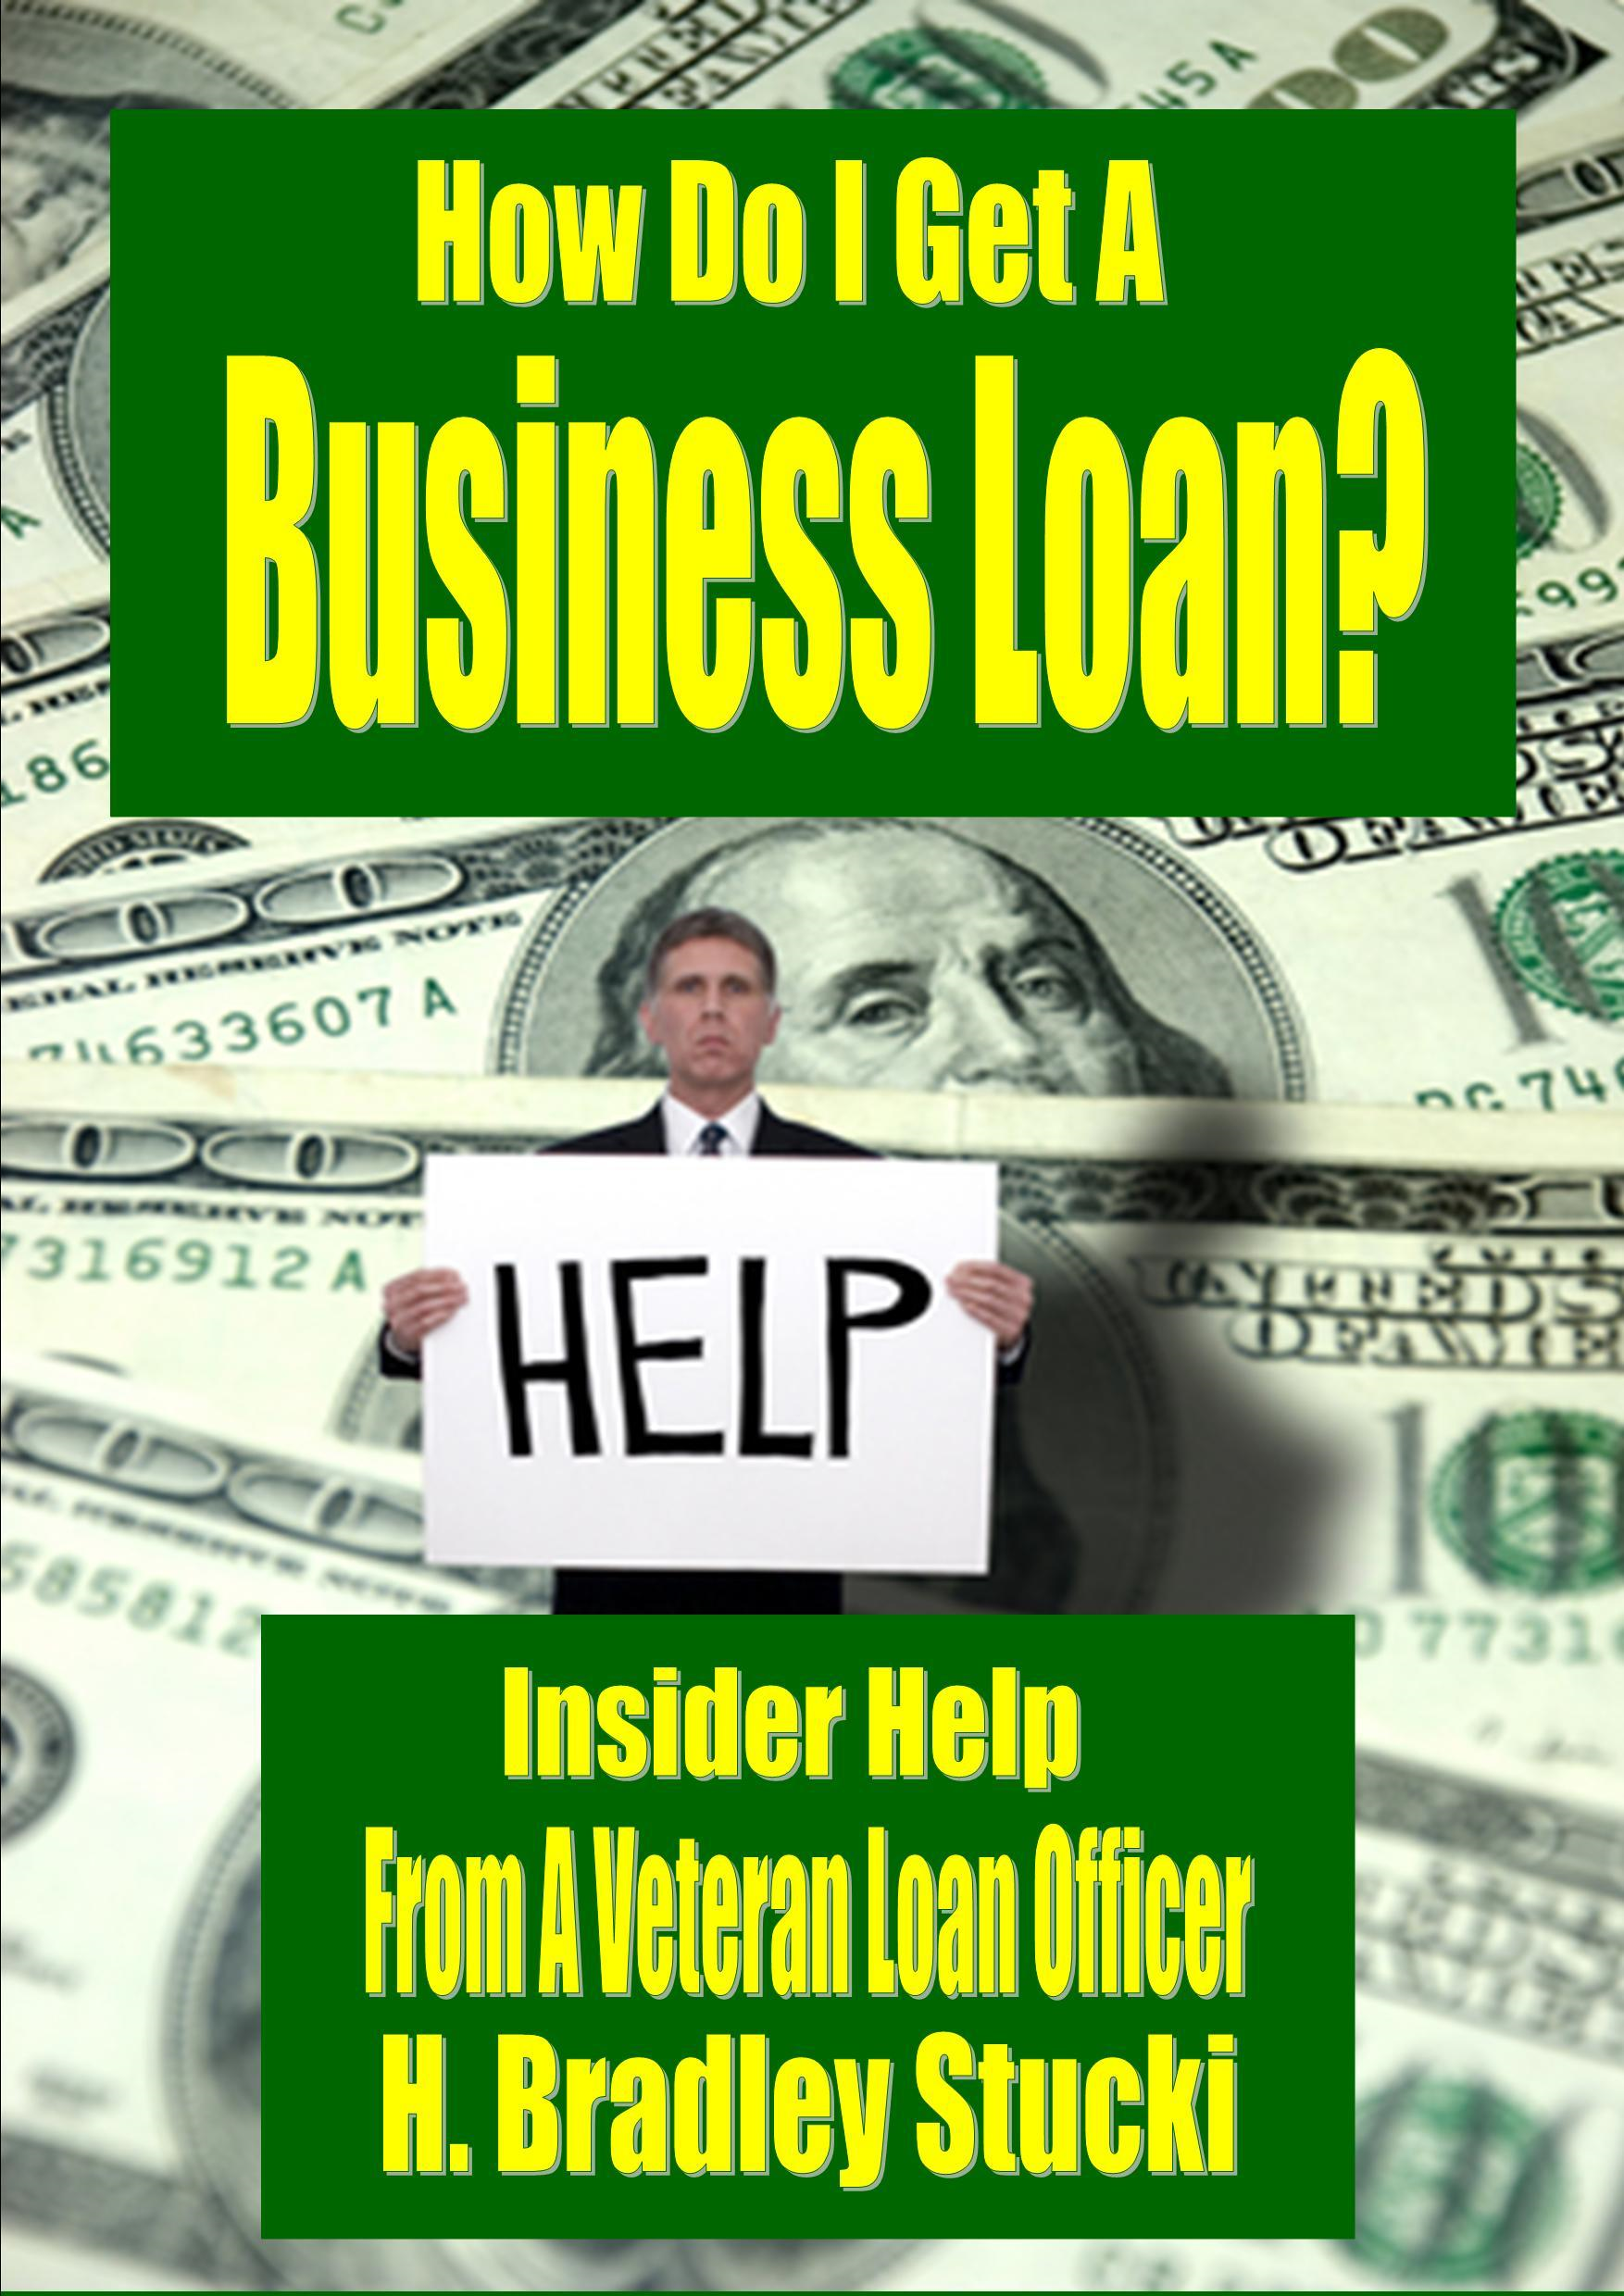 How Do I Get a Business Loan? Insider Help From a Veteran Loan Officer